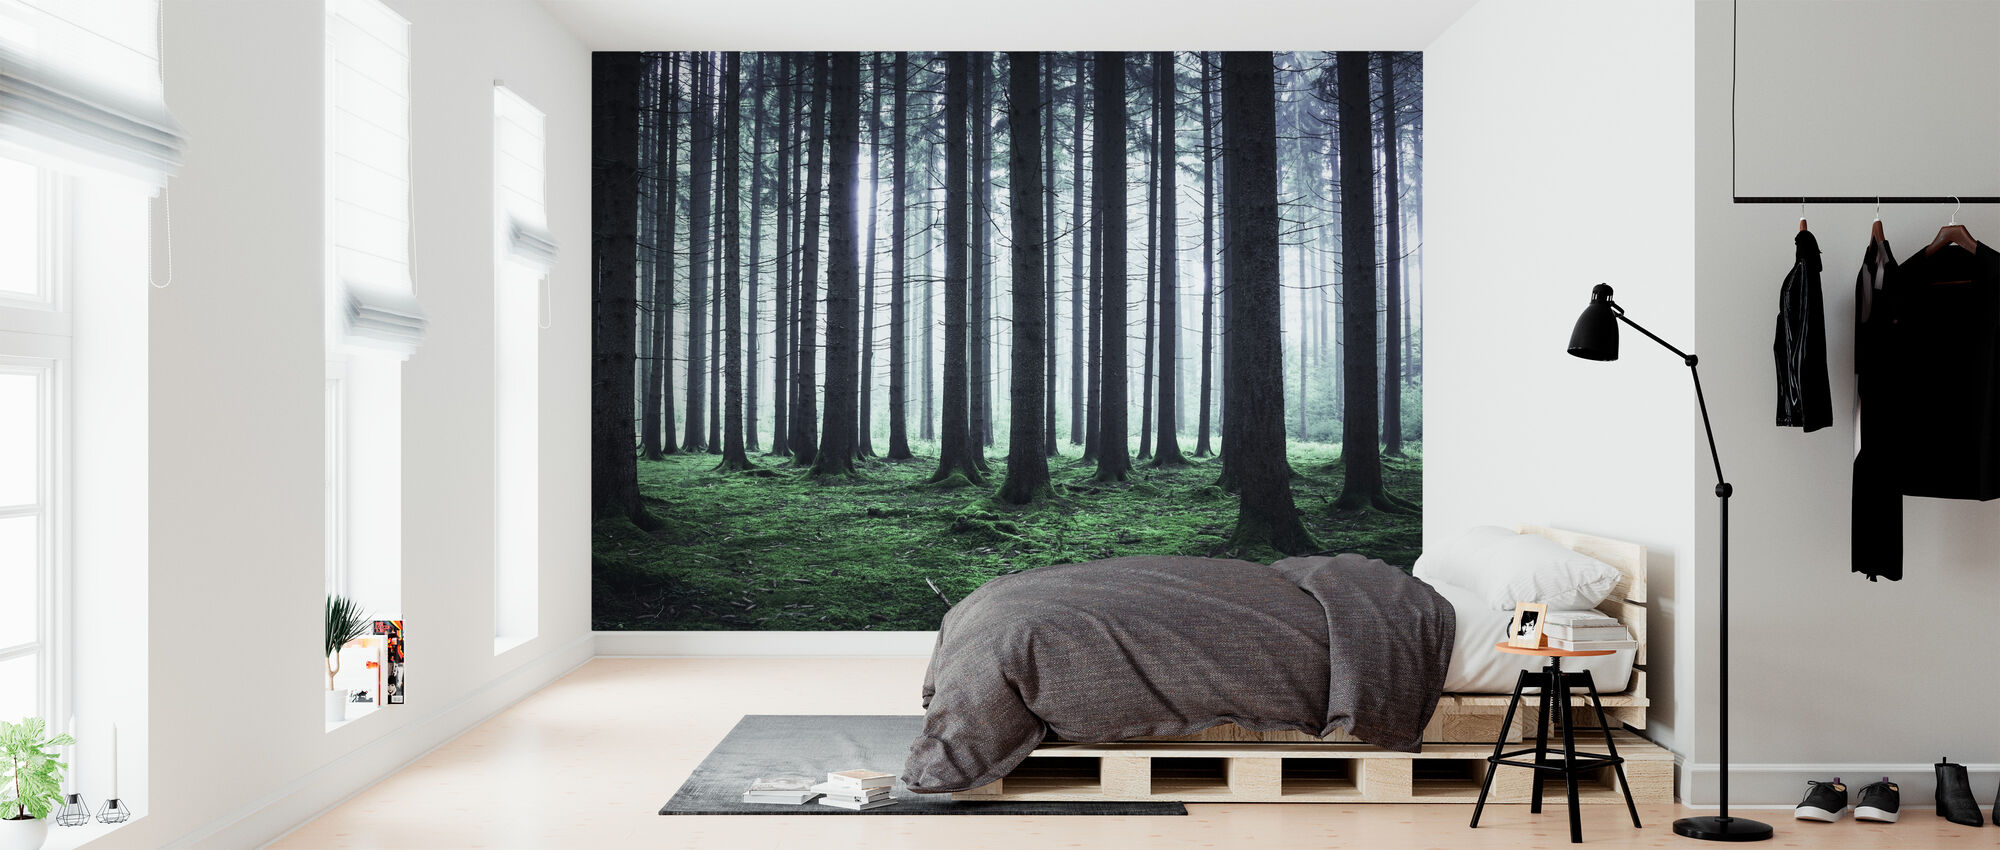 Foggy Forest - Wallpaper - Bedroom